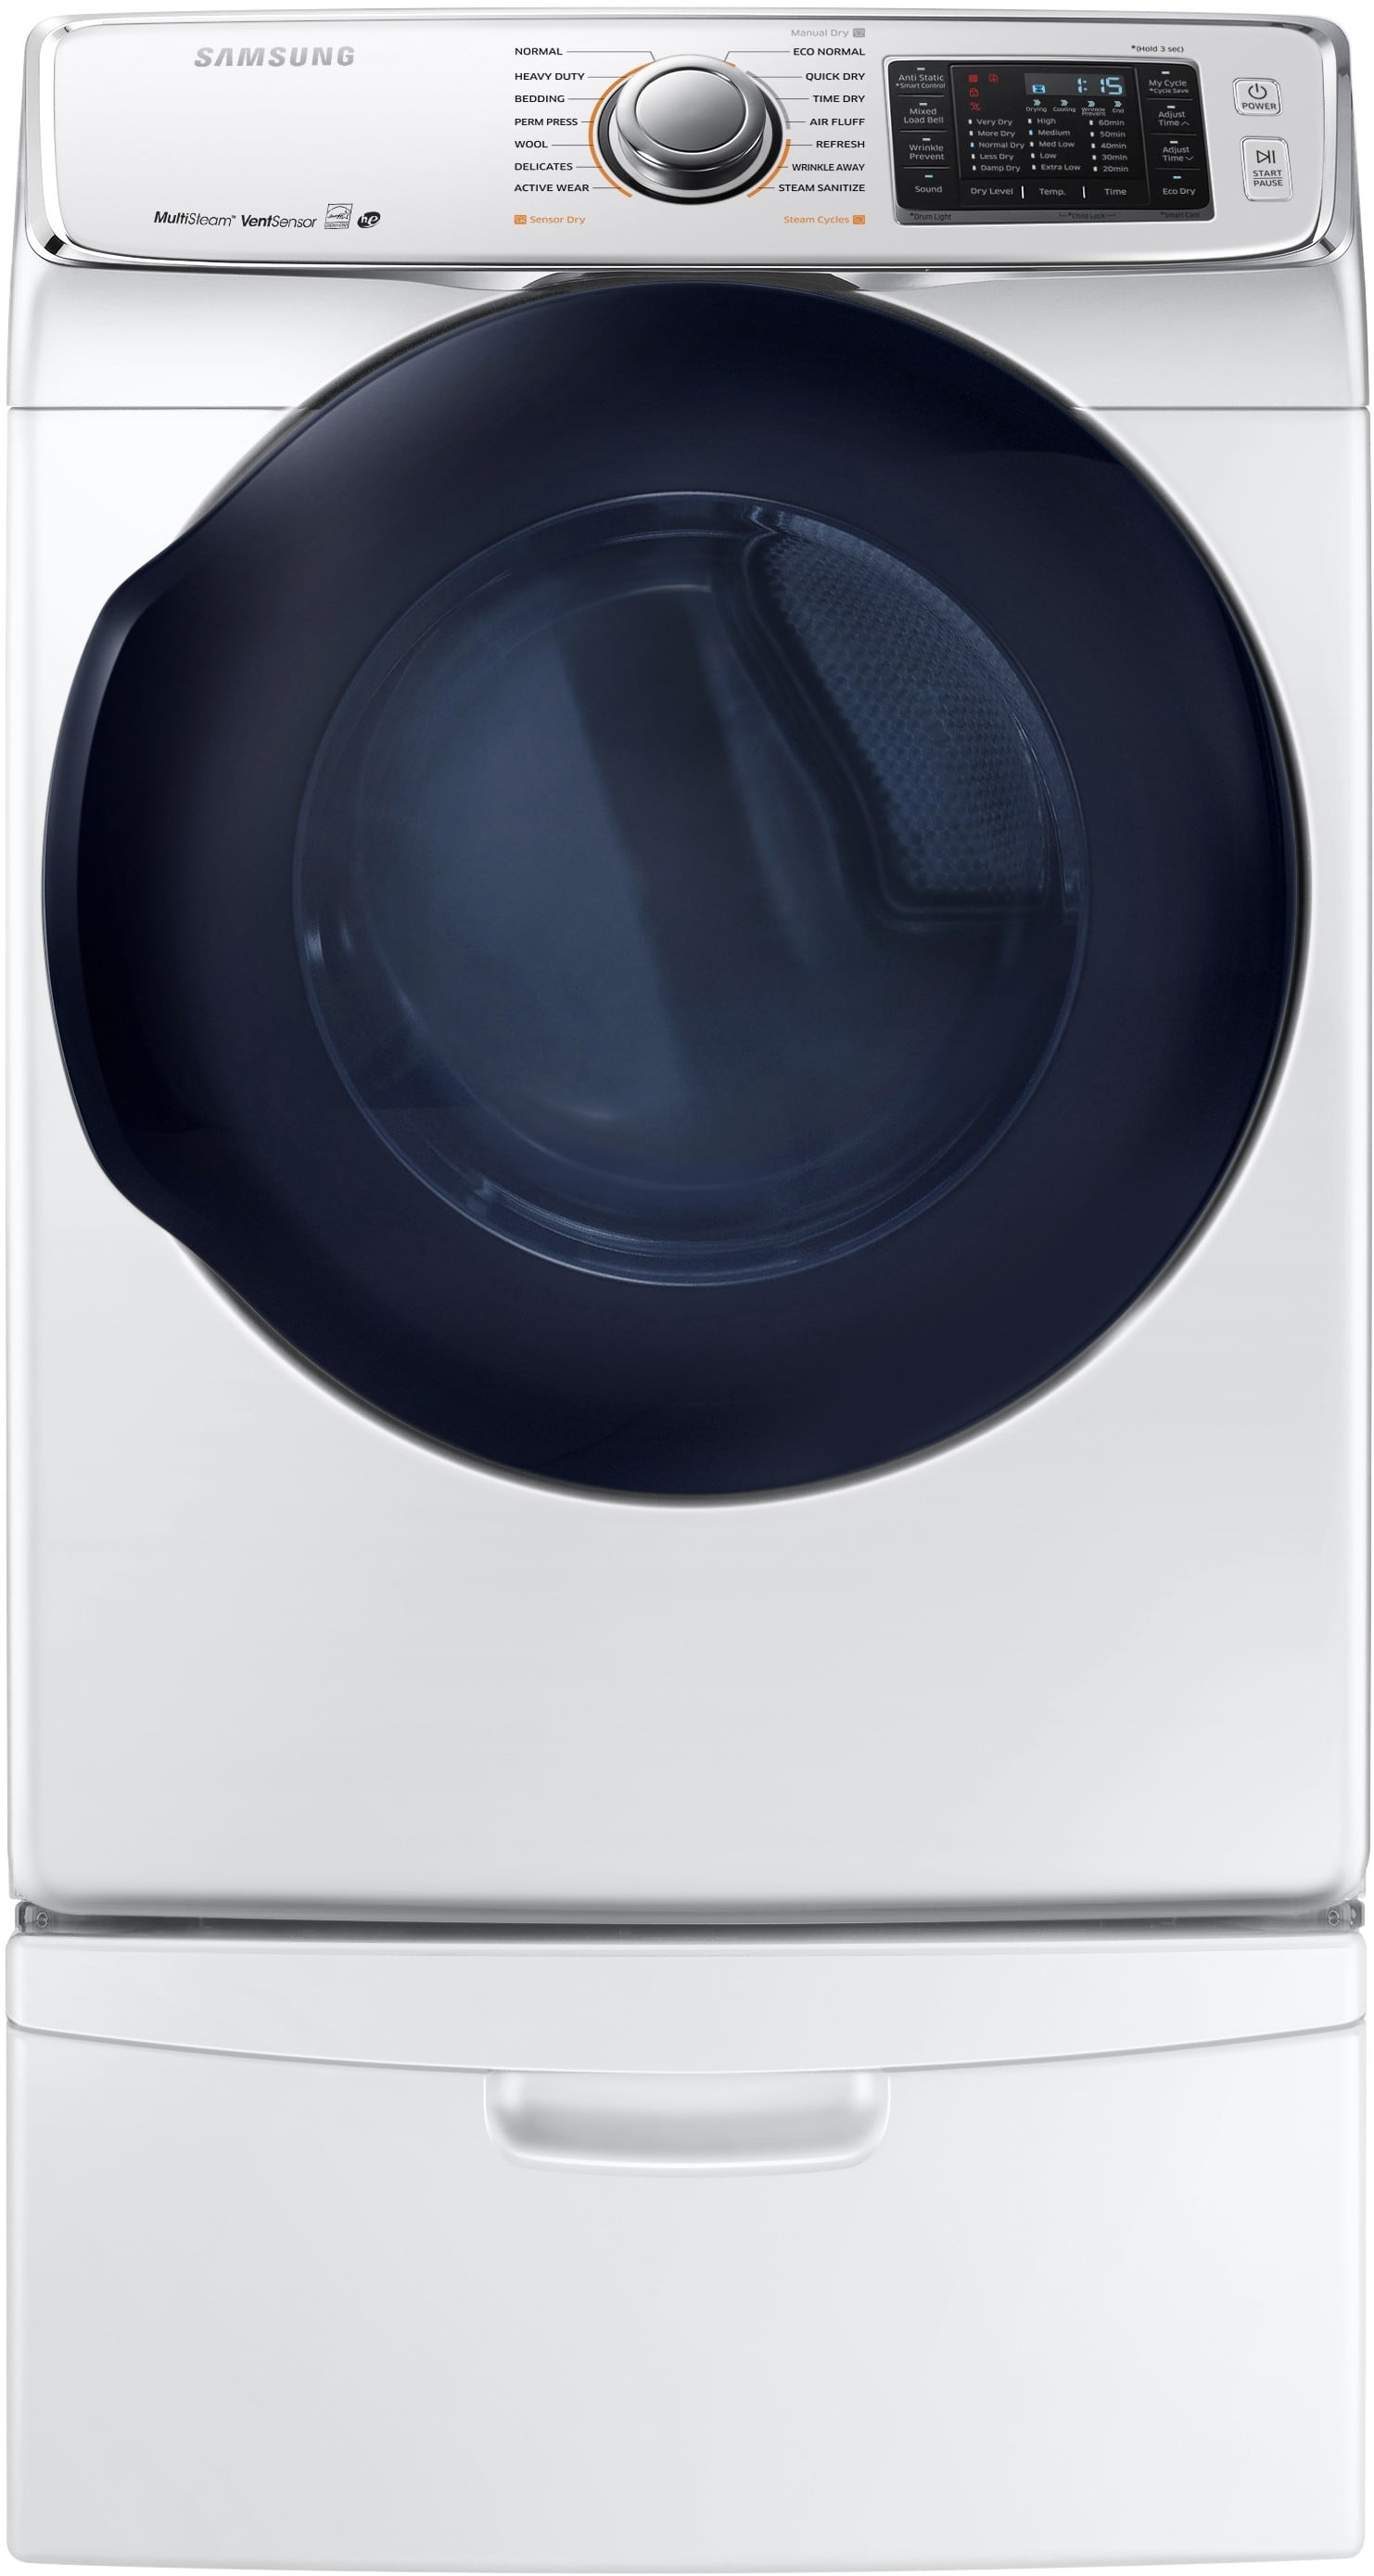 Samsung Dv45k6500ew 27 Inch 7 5 Cu Ft Electric Dryer With Multi Steam Smart Care Eco Dry 7 5 Cu Ft Capacity 14 Dry Cycles 11 Dry Options